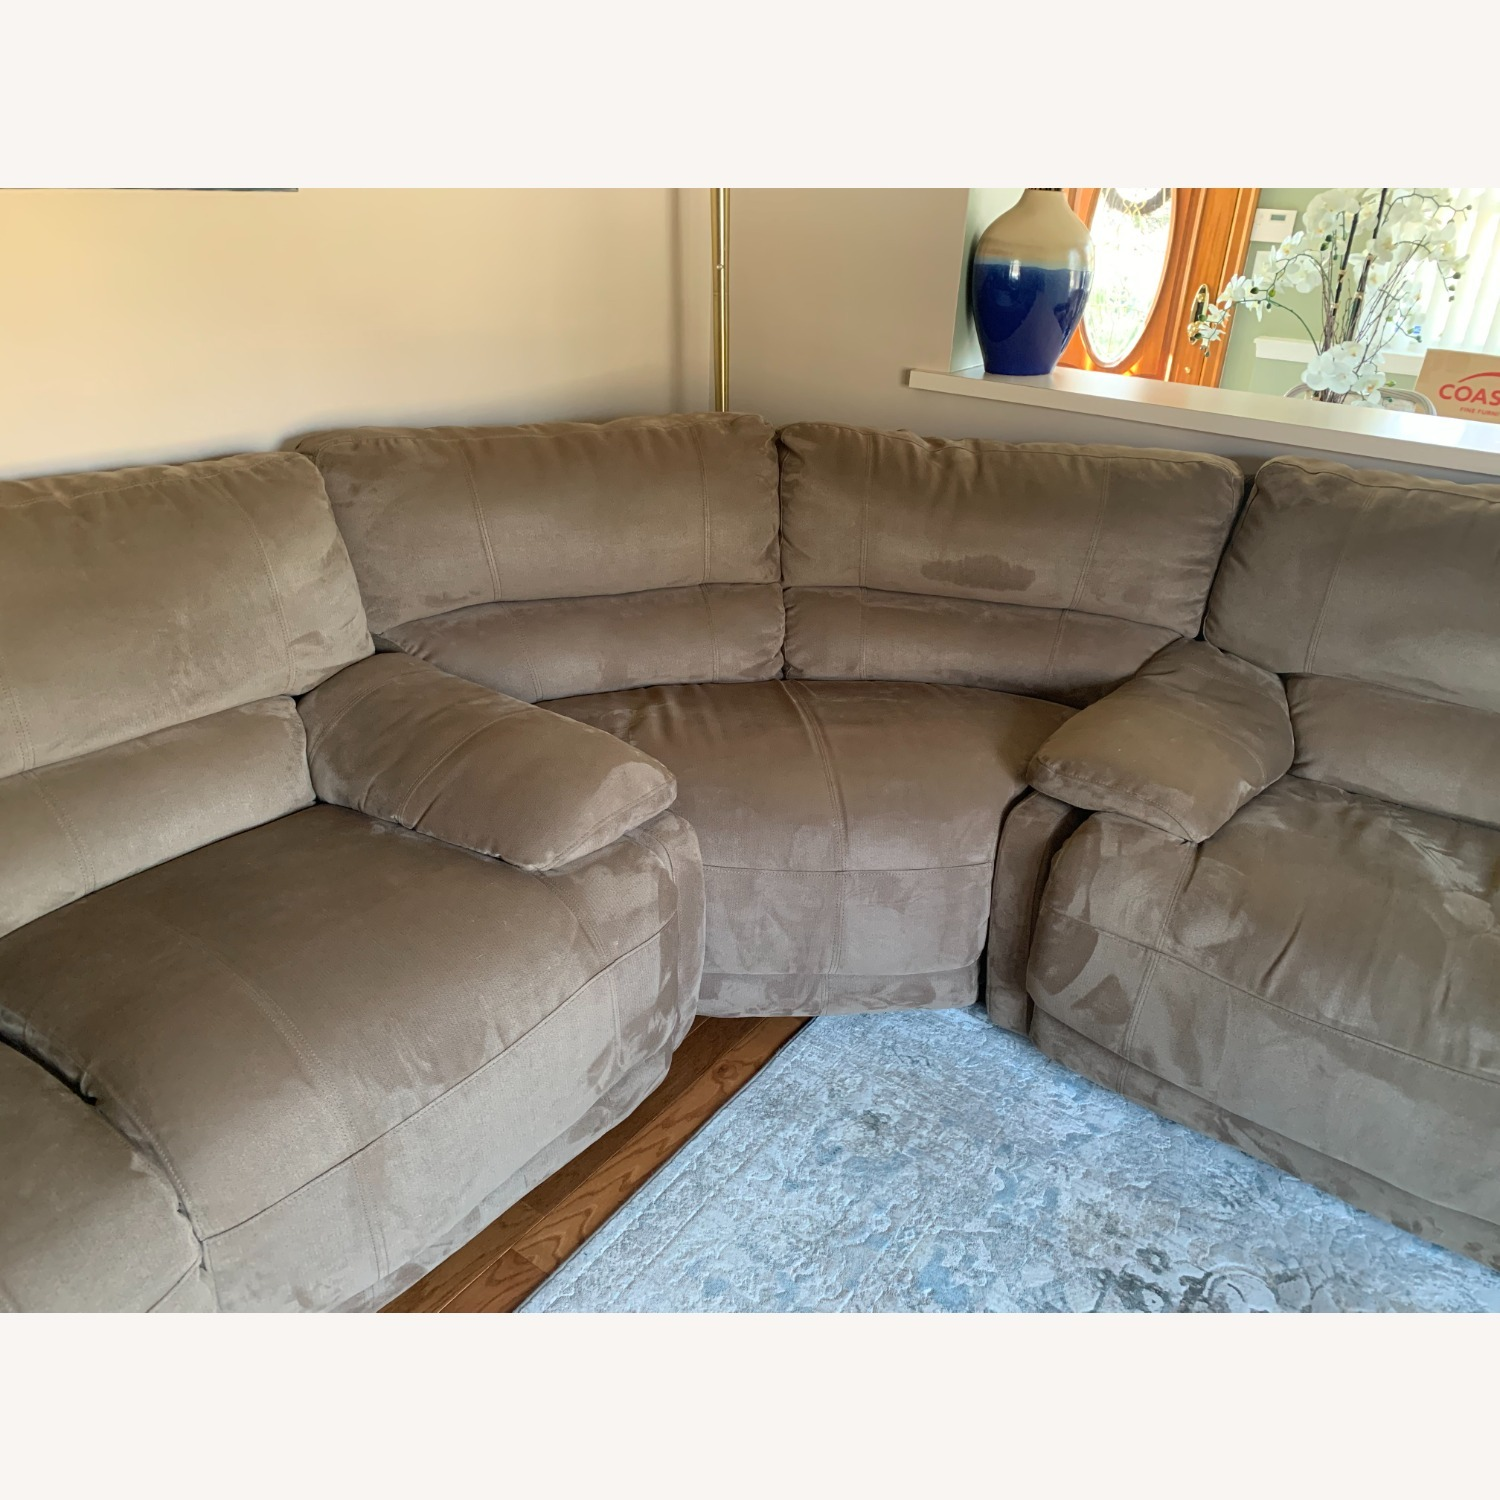 3 Piece Sectional Couch with Recliners - image-2